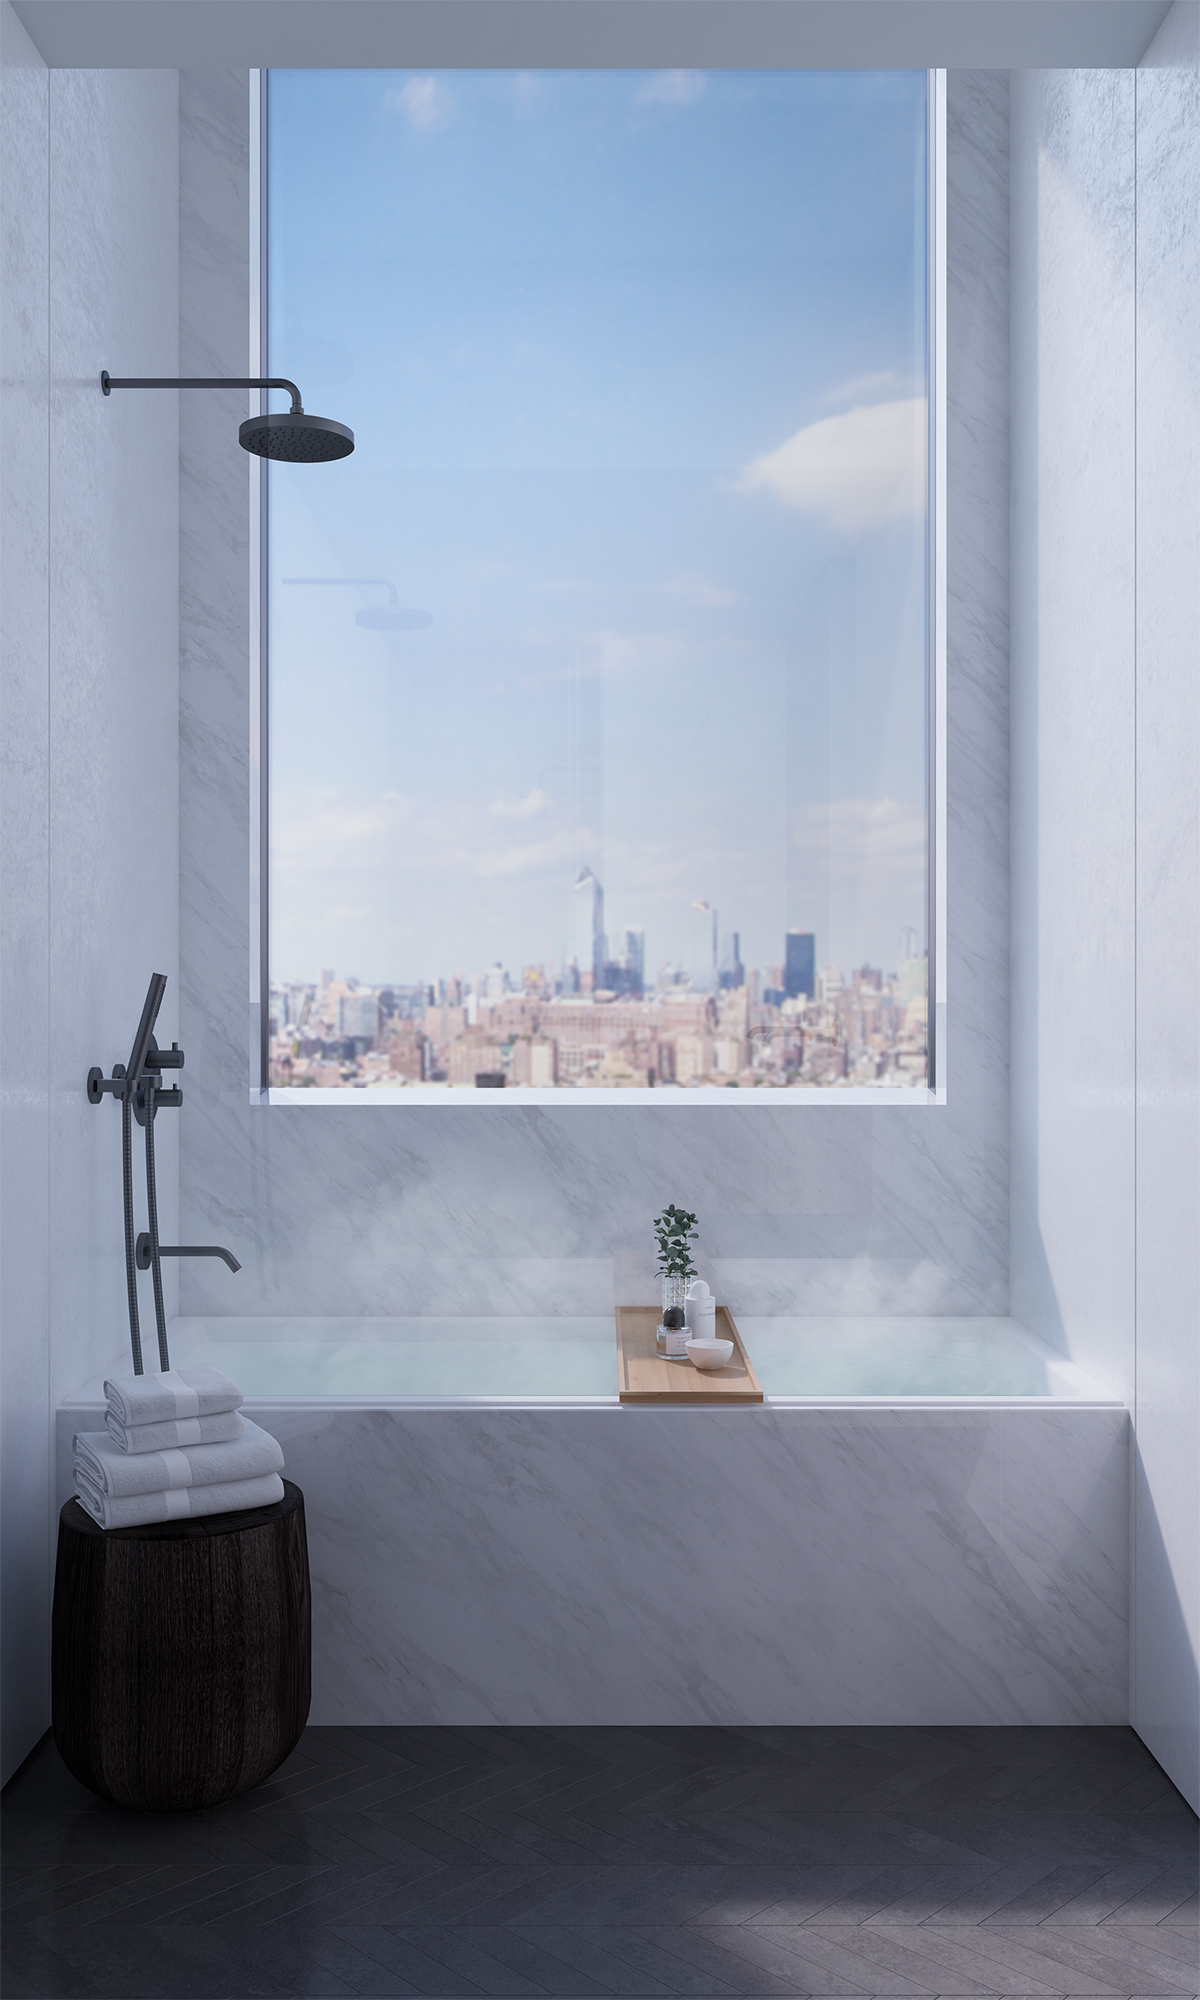 VIEW FROM MASTER BATHROOM